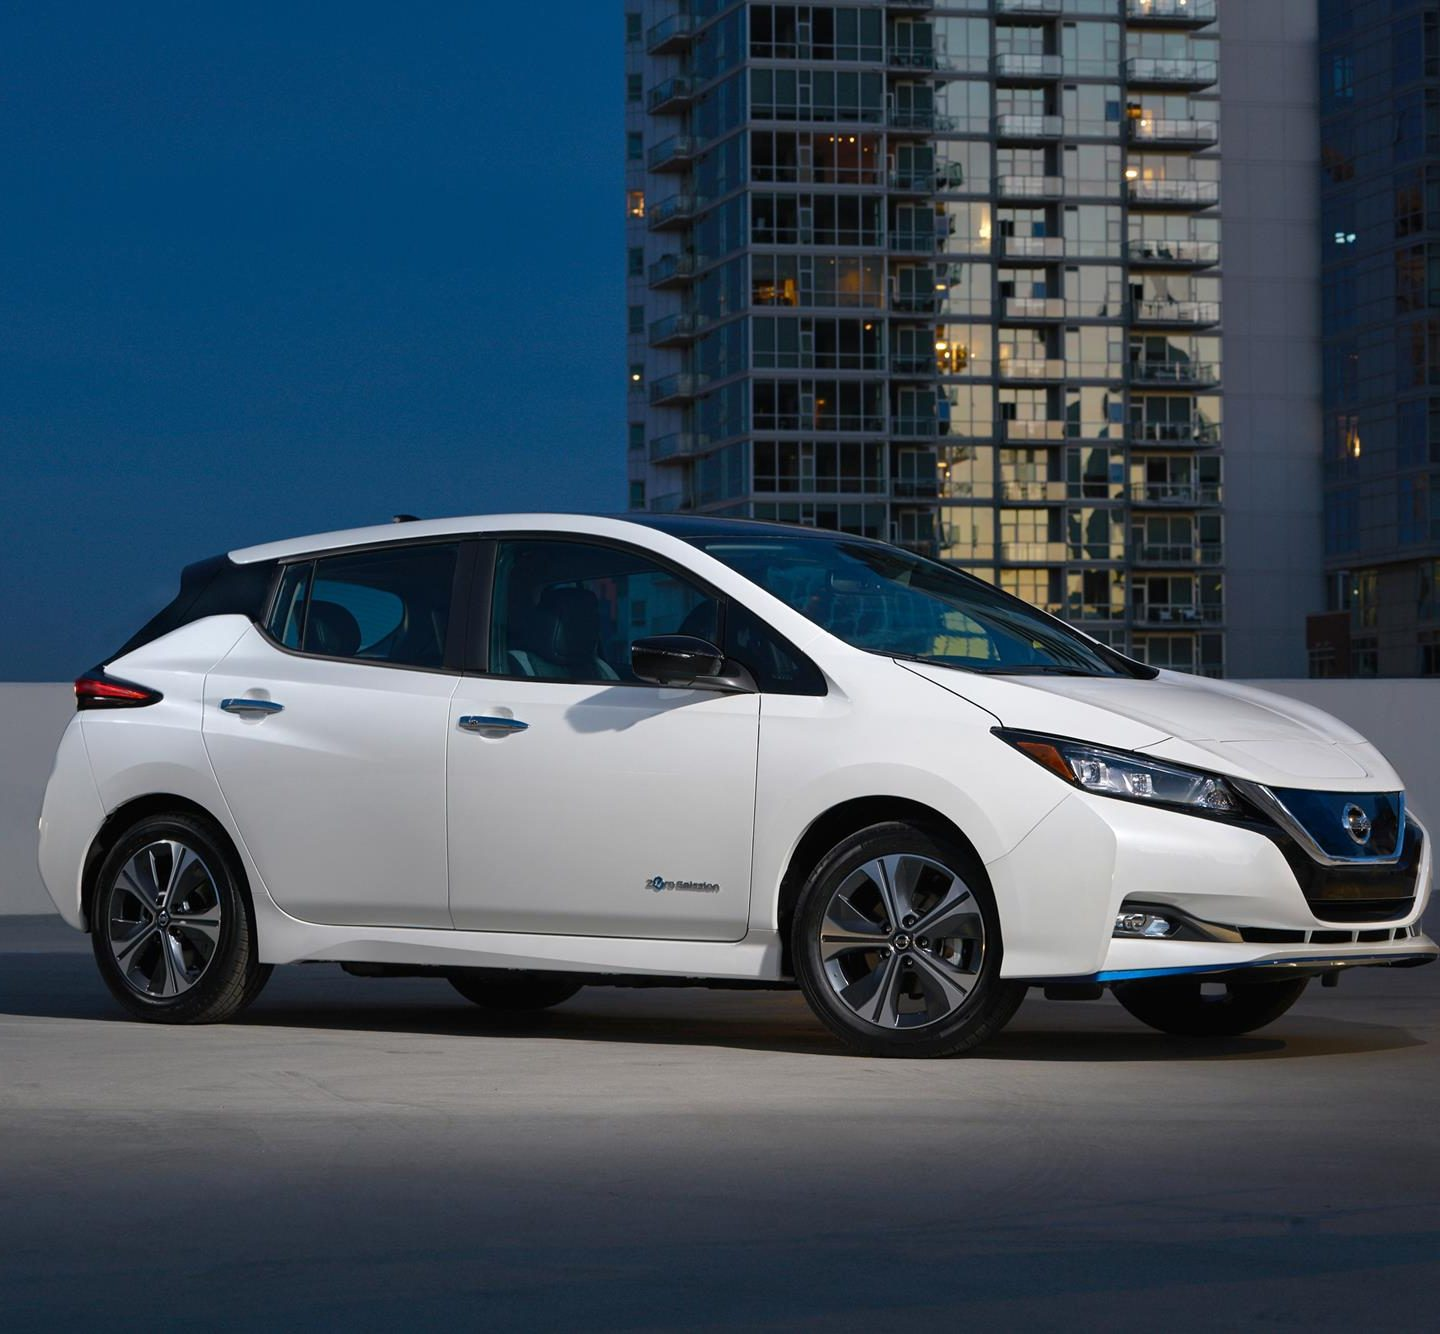 Does the Nissan Leaf Compare at All to Any of the Tesla Vehicles?